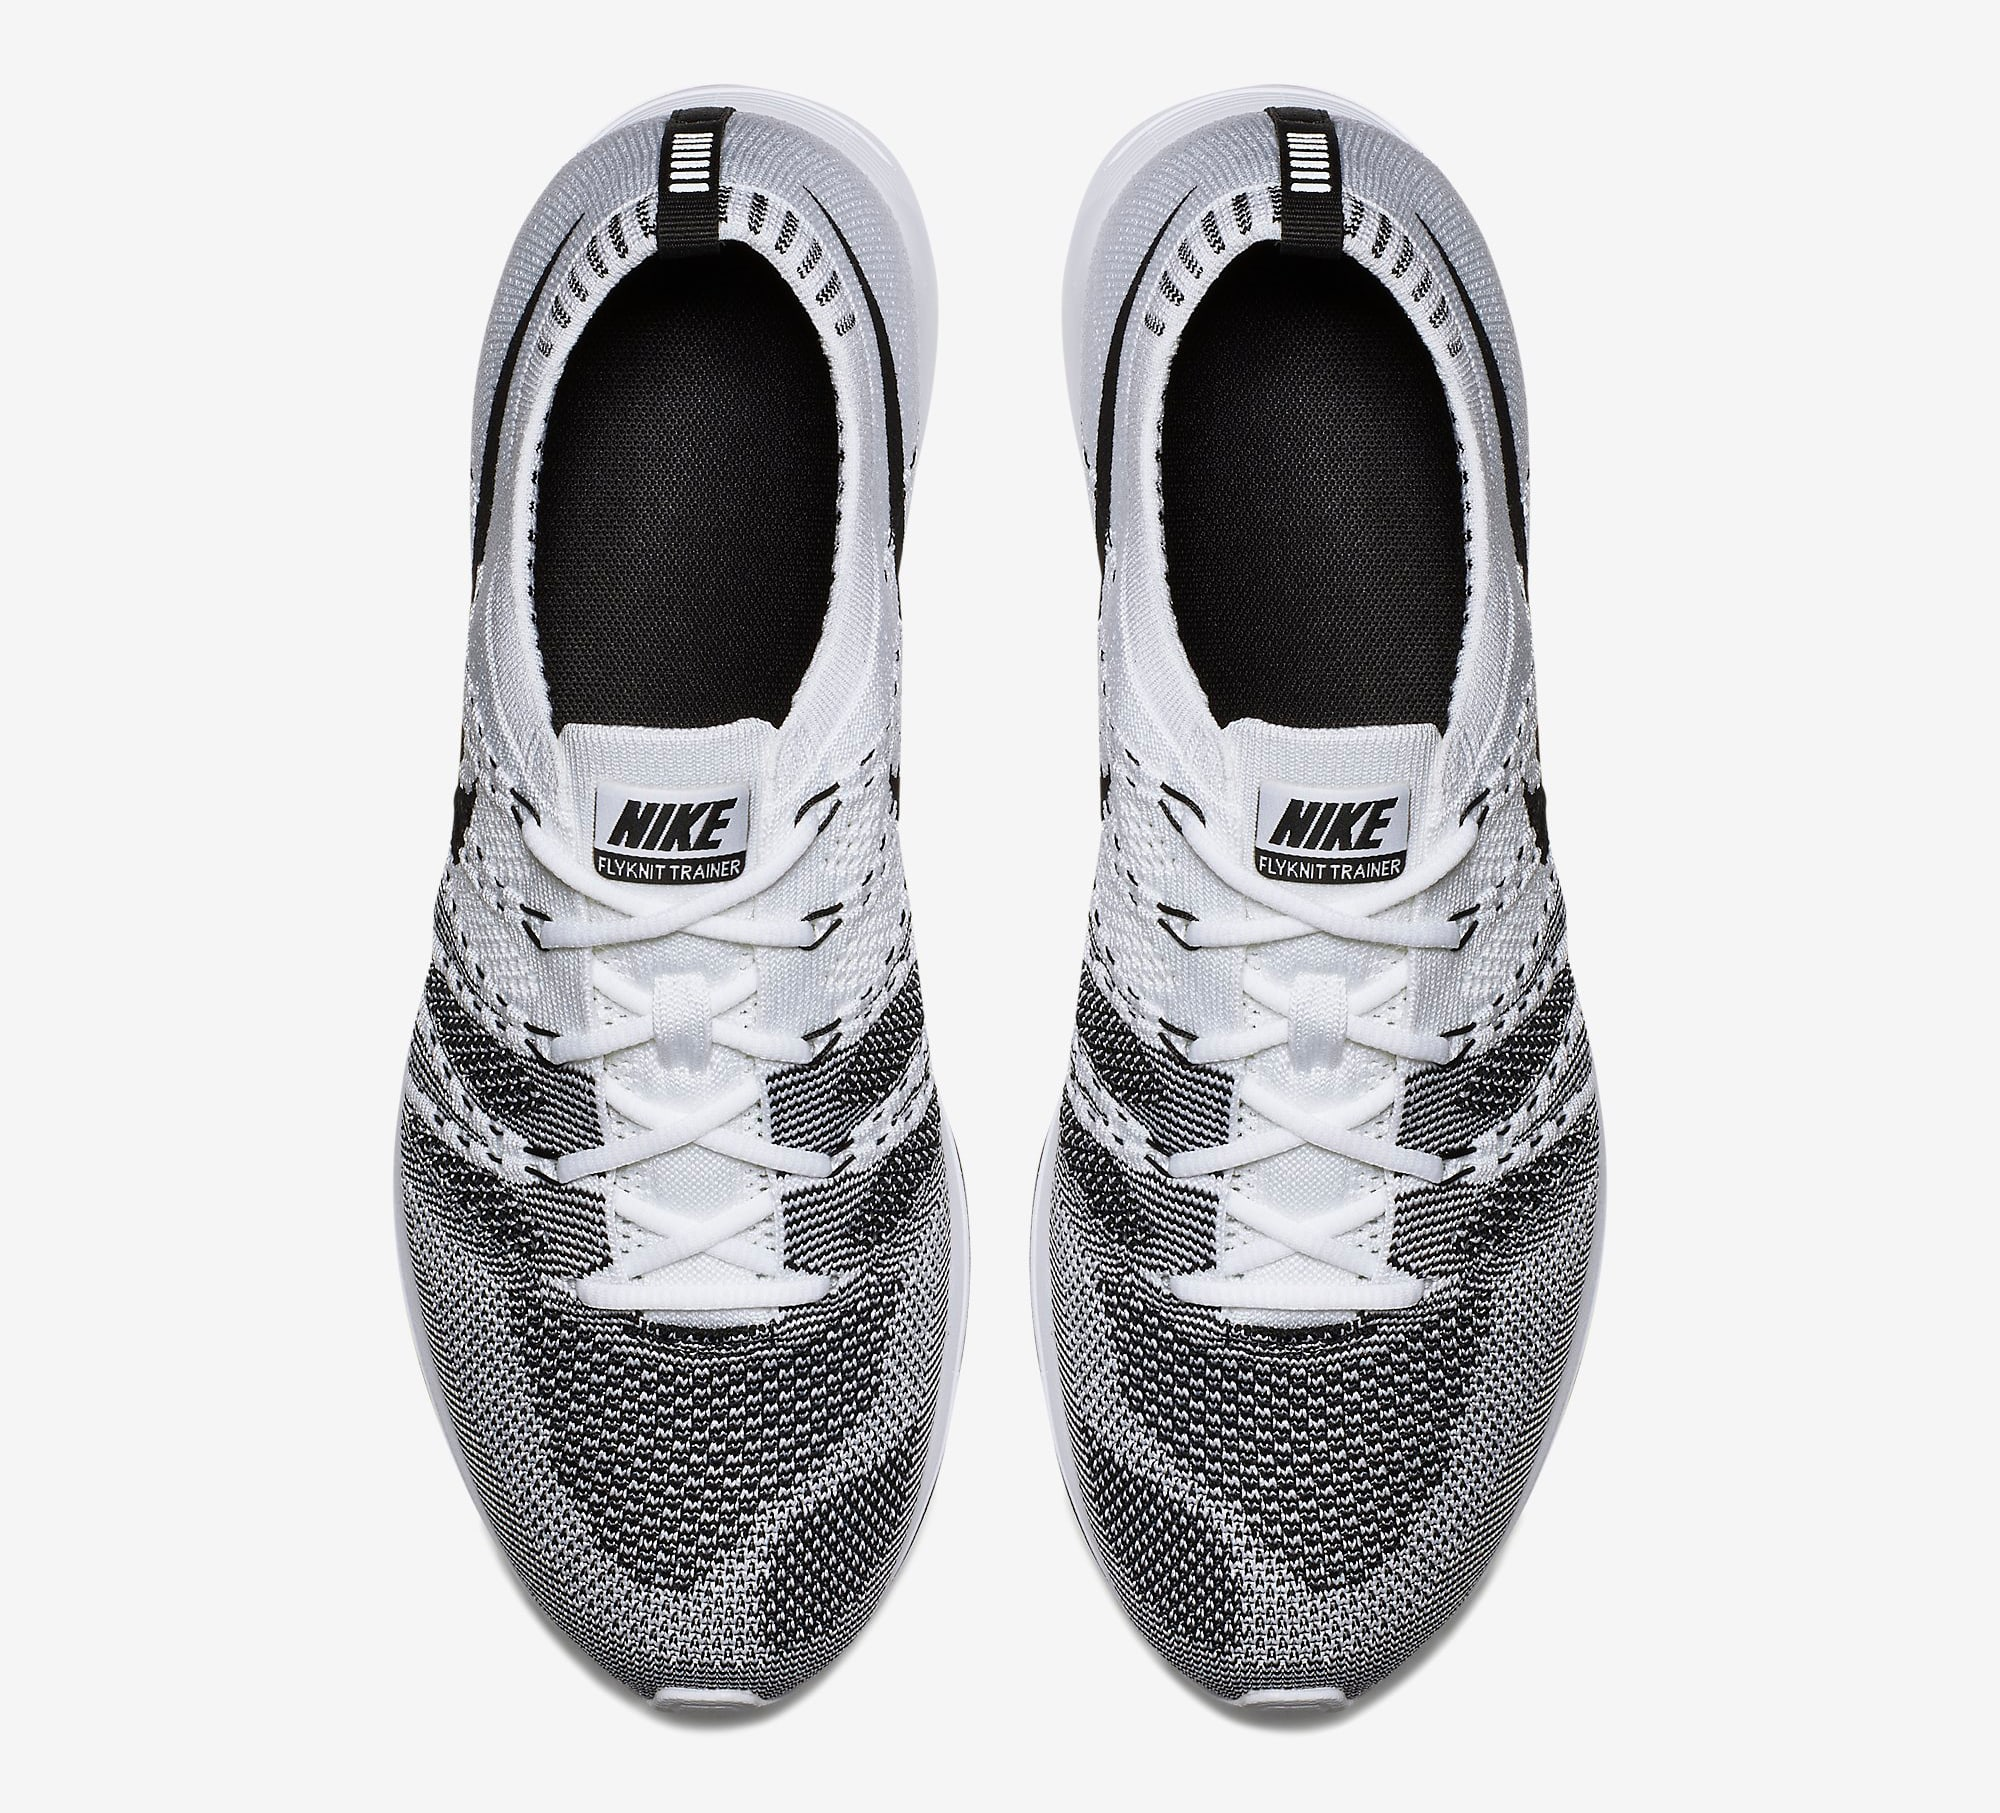 b7d431eeaf31 Finally the Release Date for the Nike Flyknit Trainer Retro